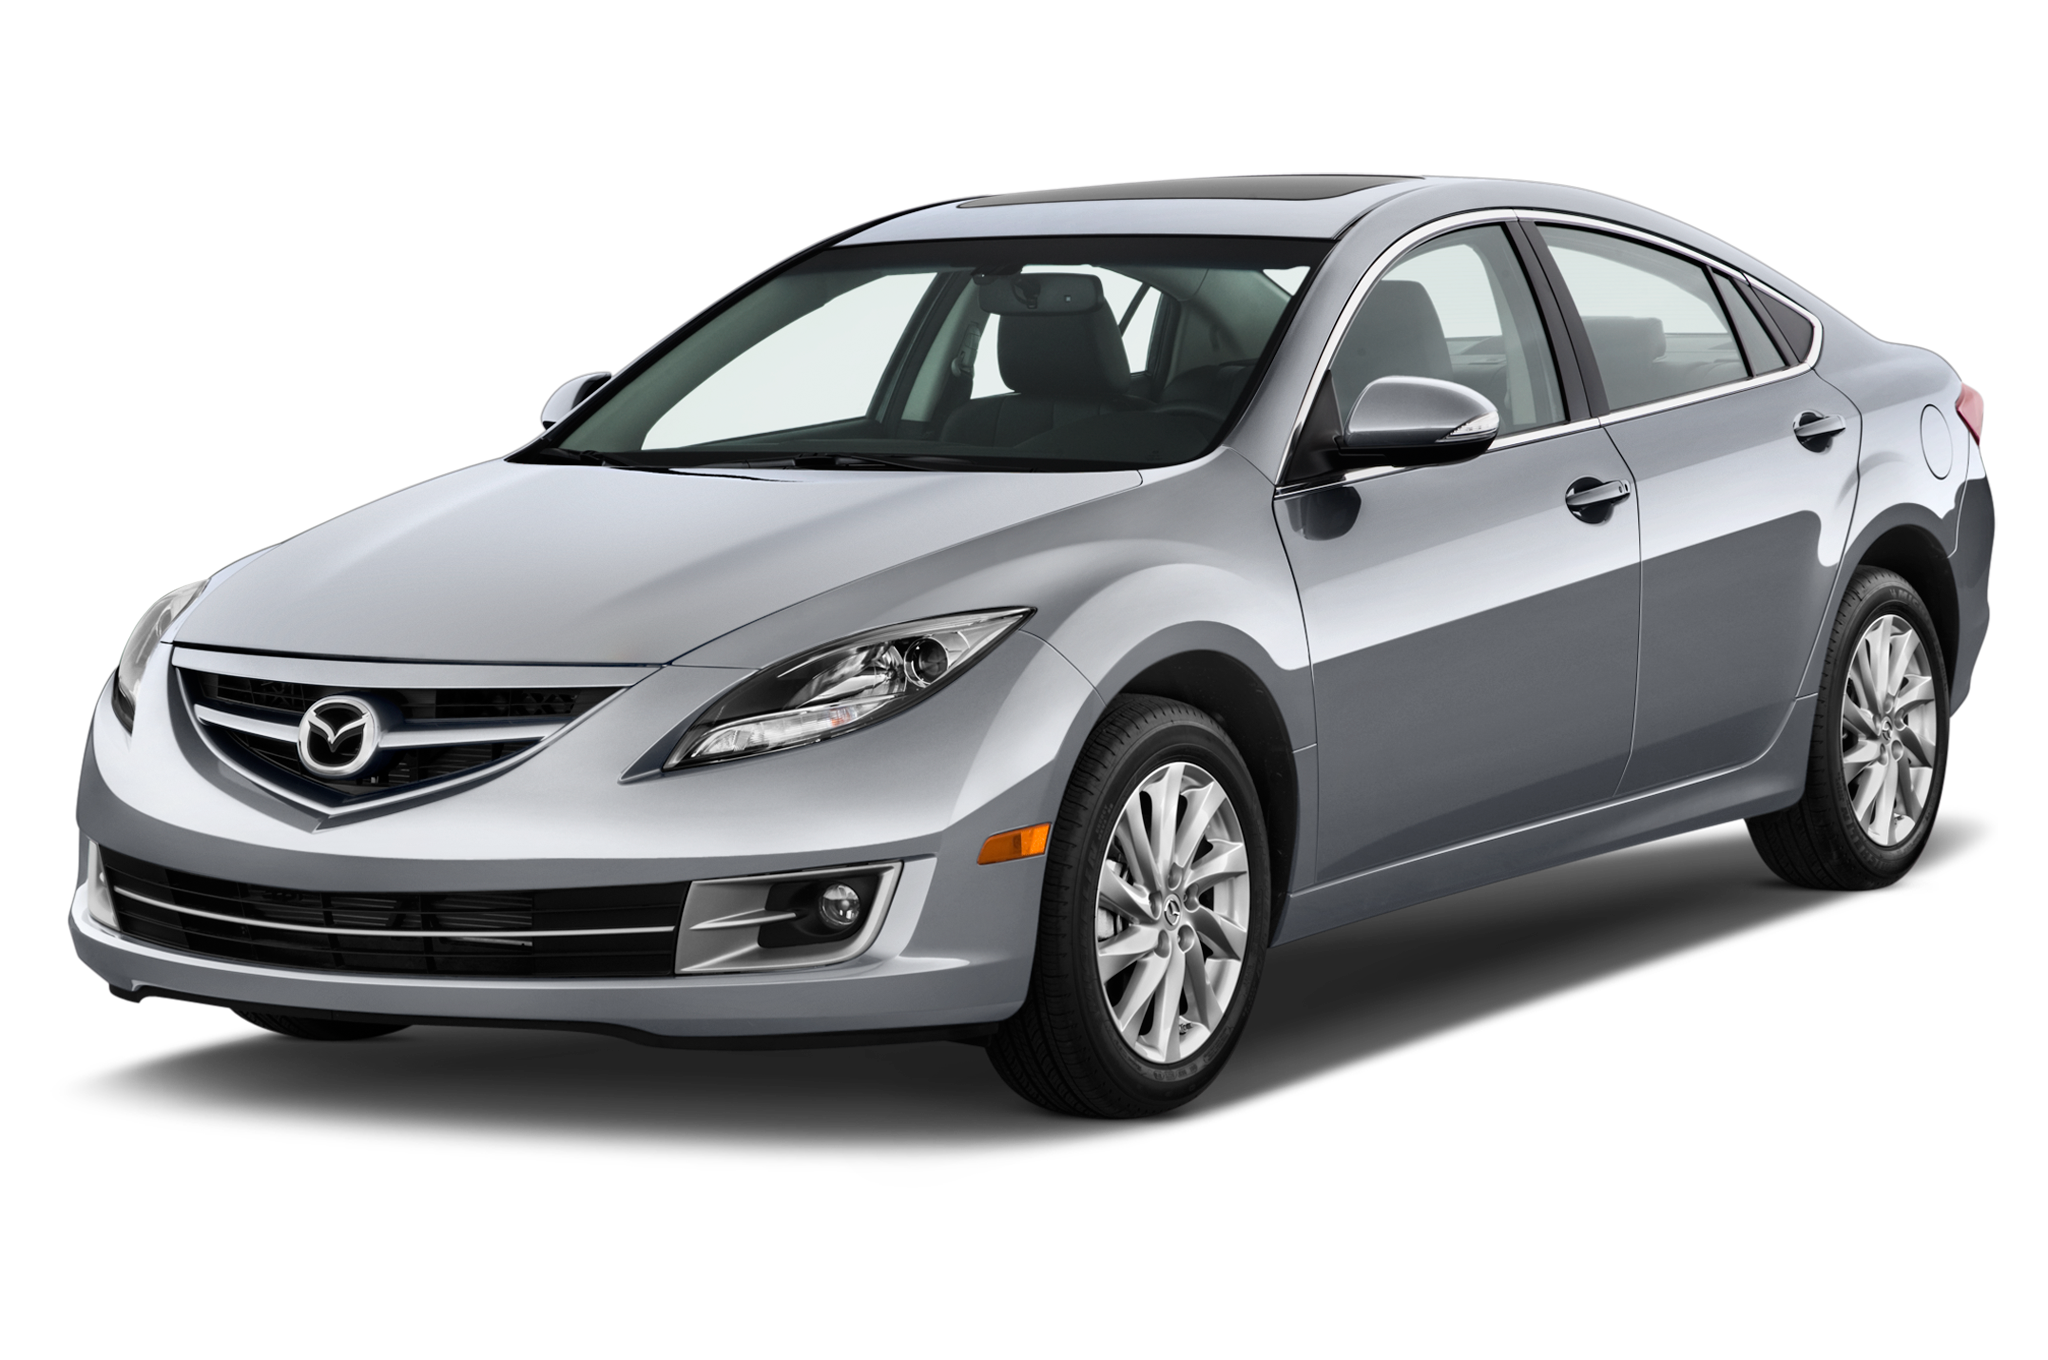 2011 Mazda6 Overview